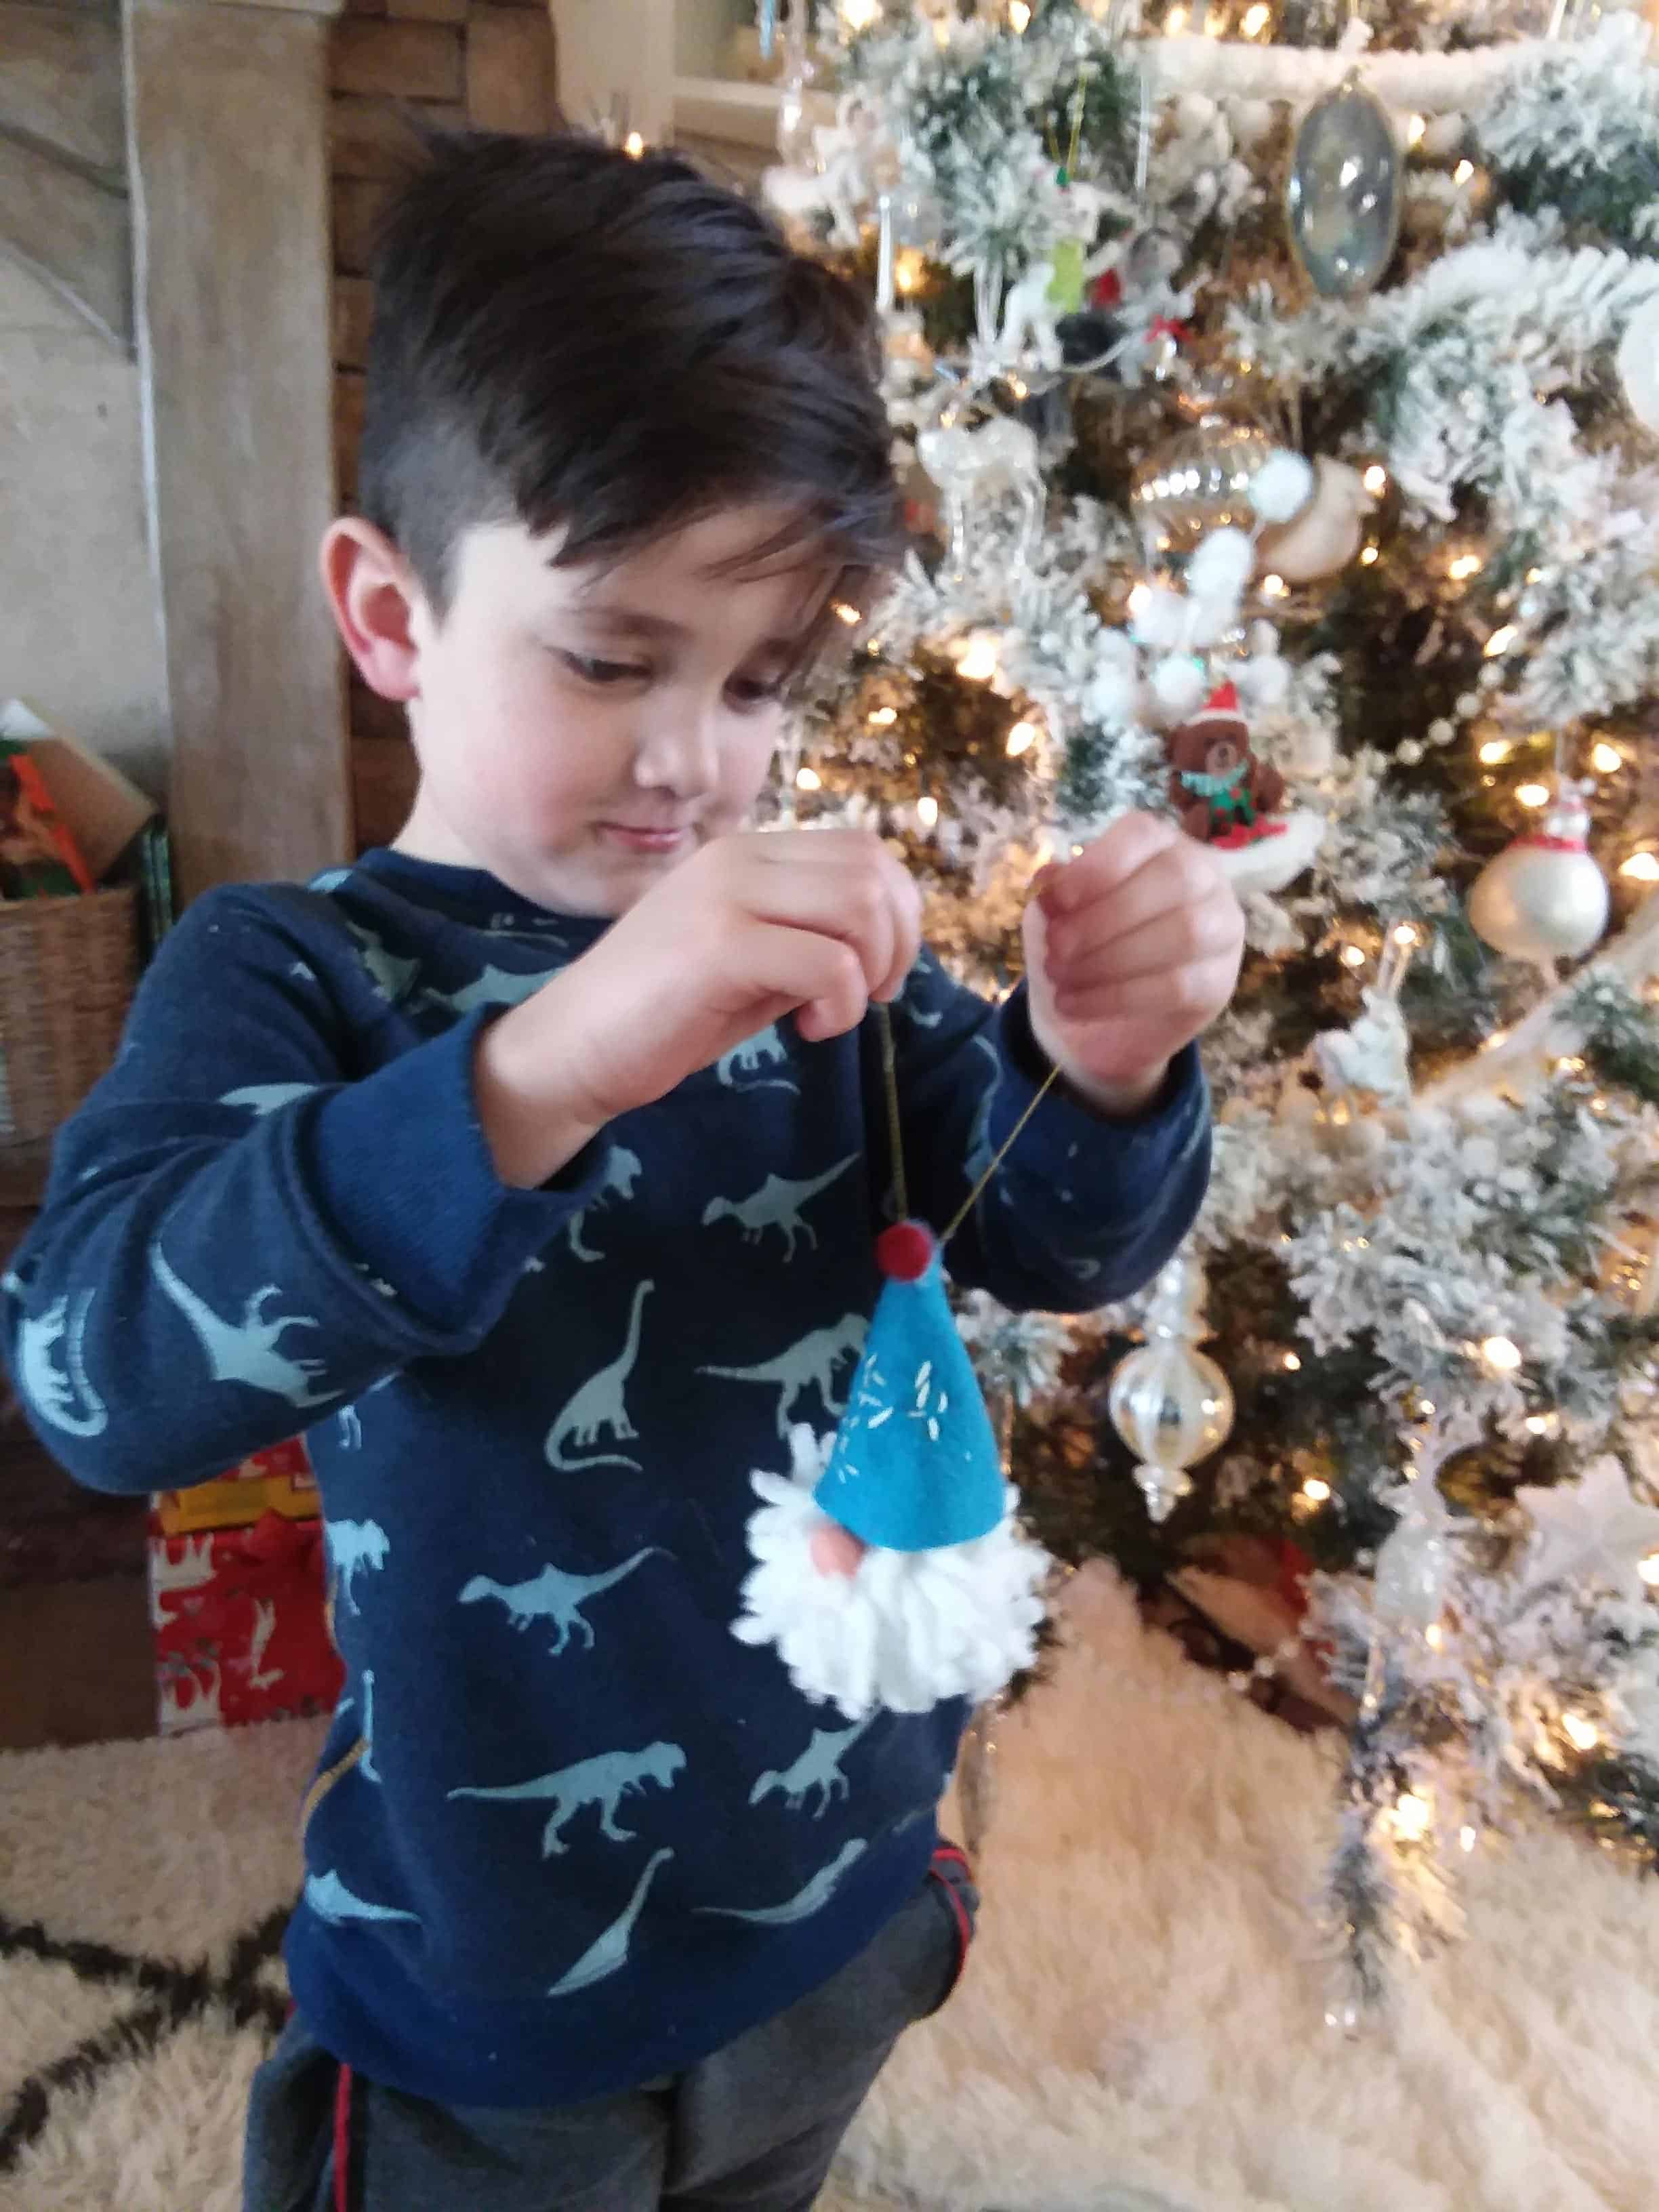 grandparent activities: little boy decorating the Christmas tree with handmade ornament